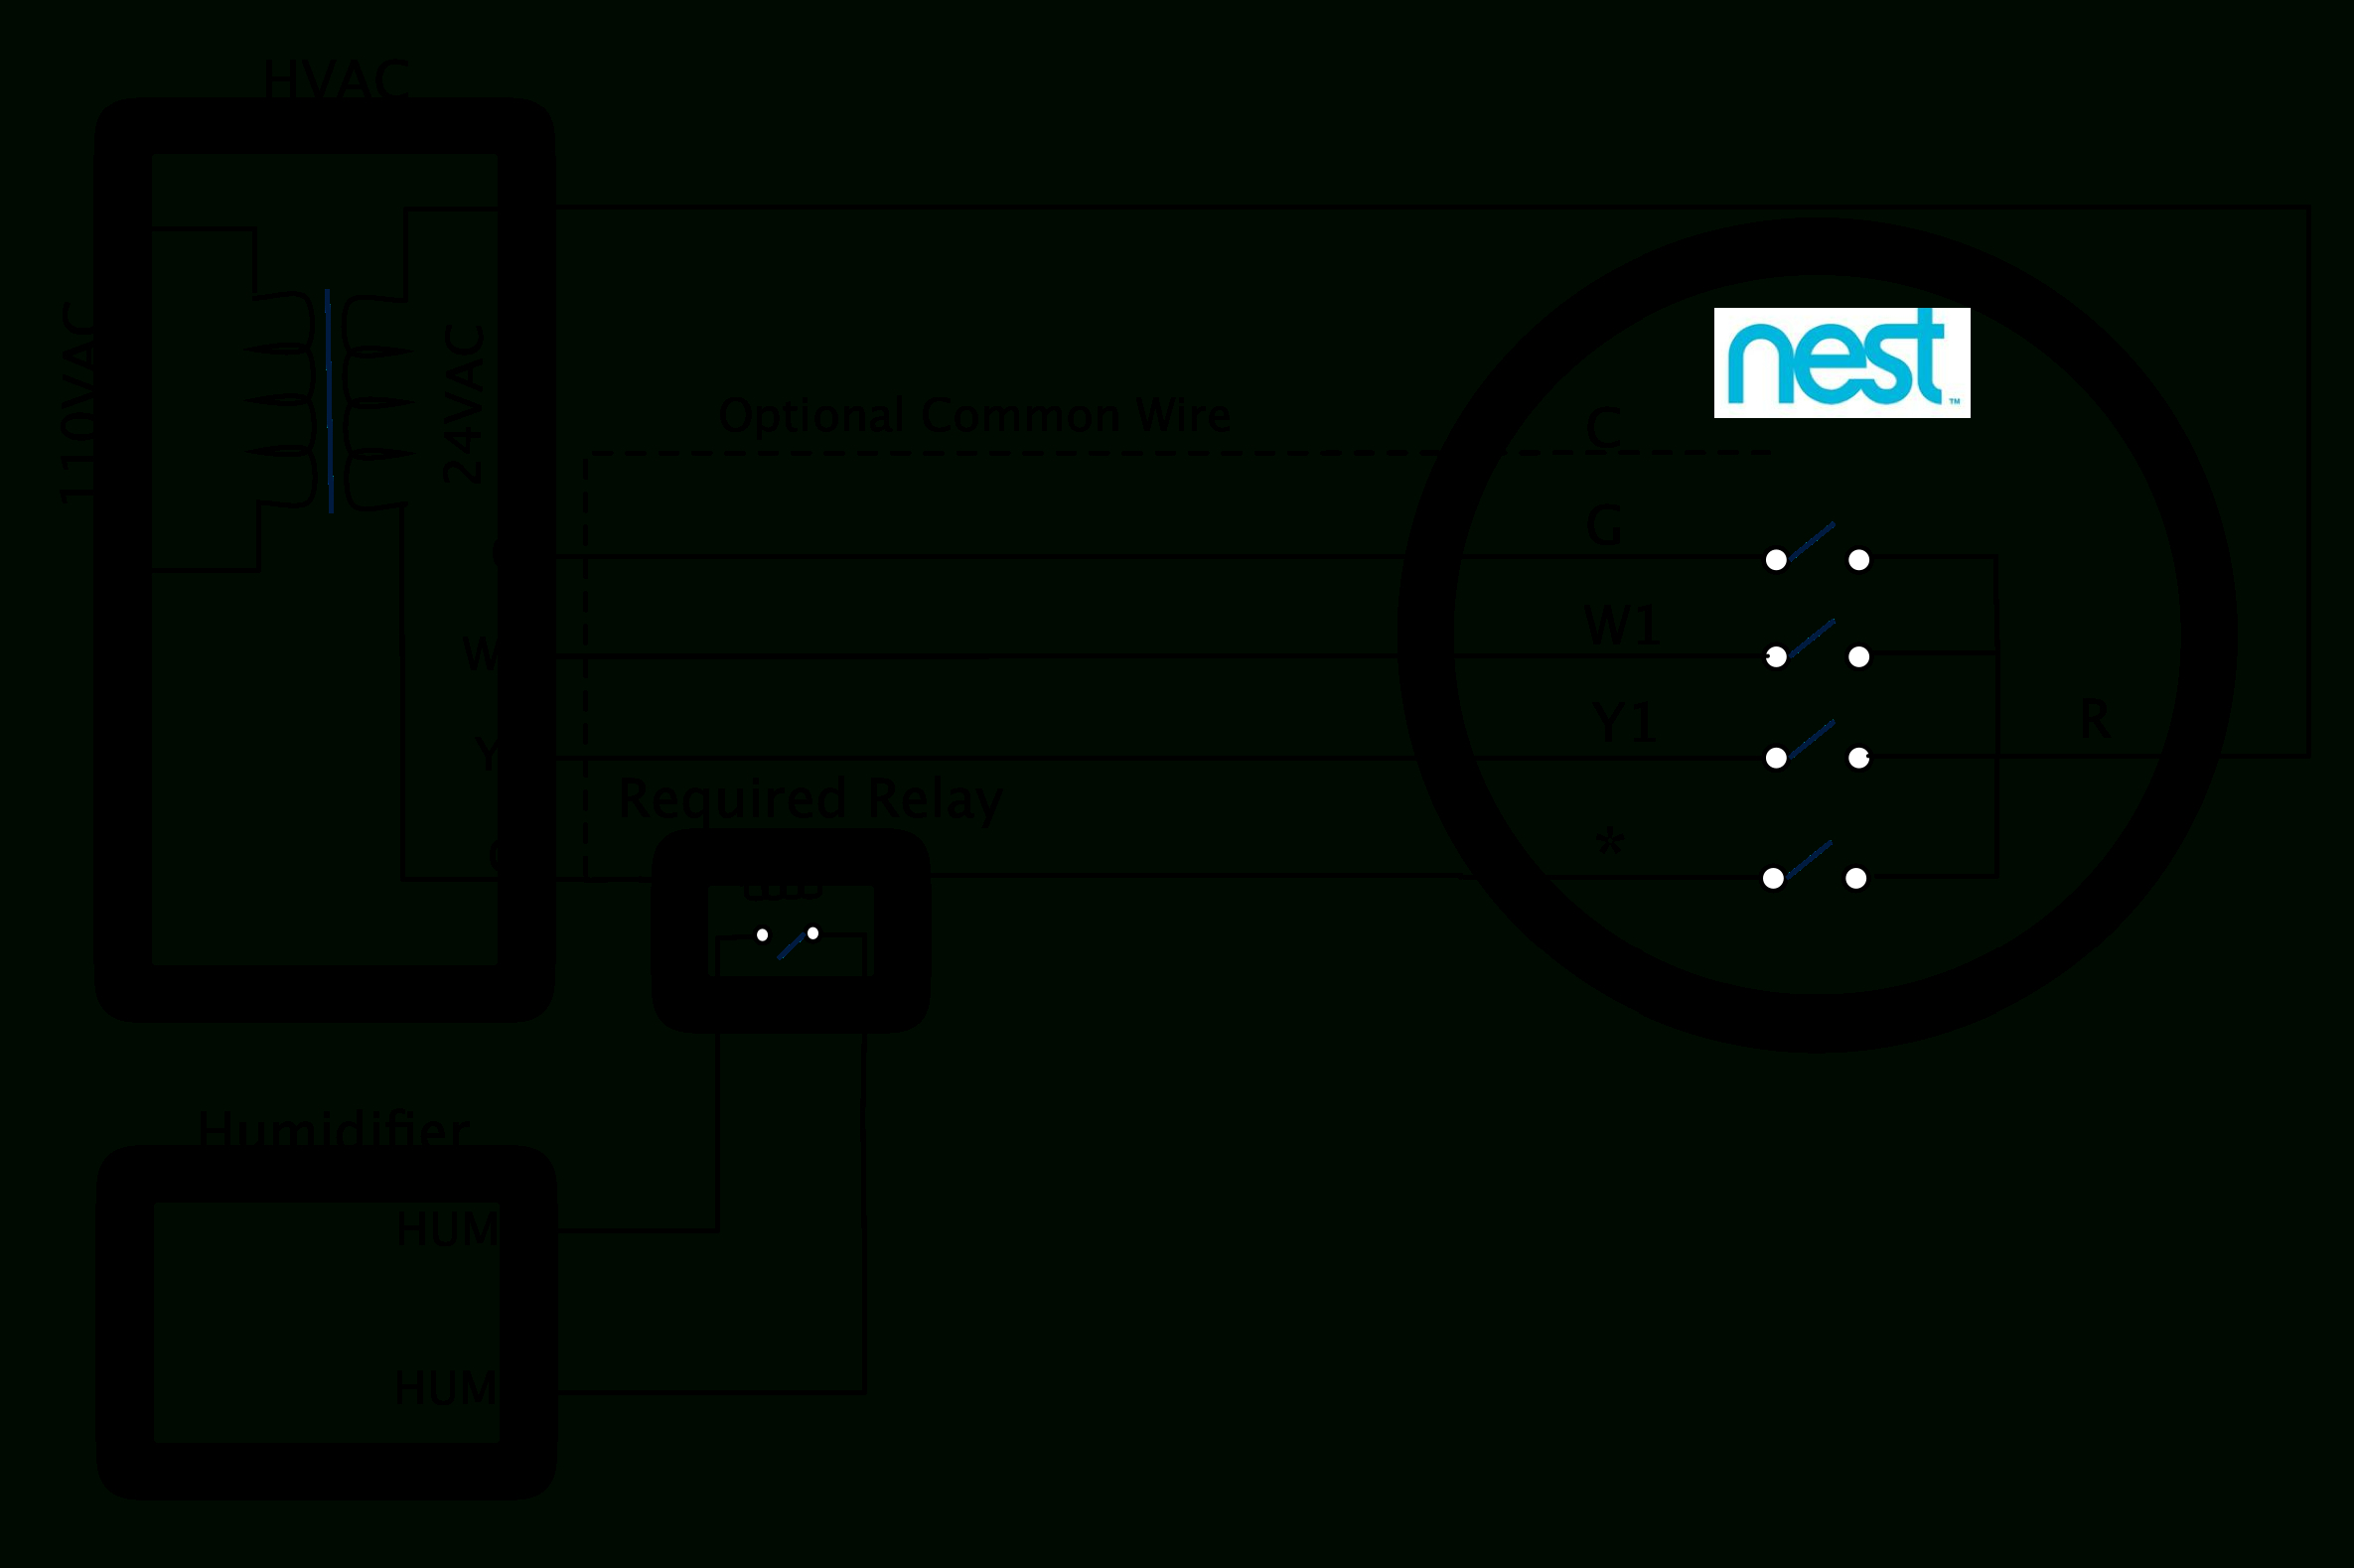 Nest Wiring Diagram Hvac - Wiring Diagrams - Nest Thermostat Wiring Diagram Symbols